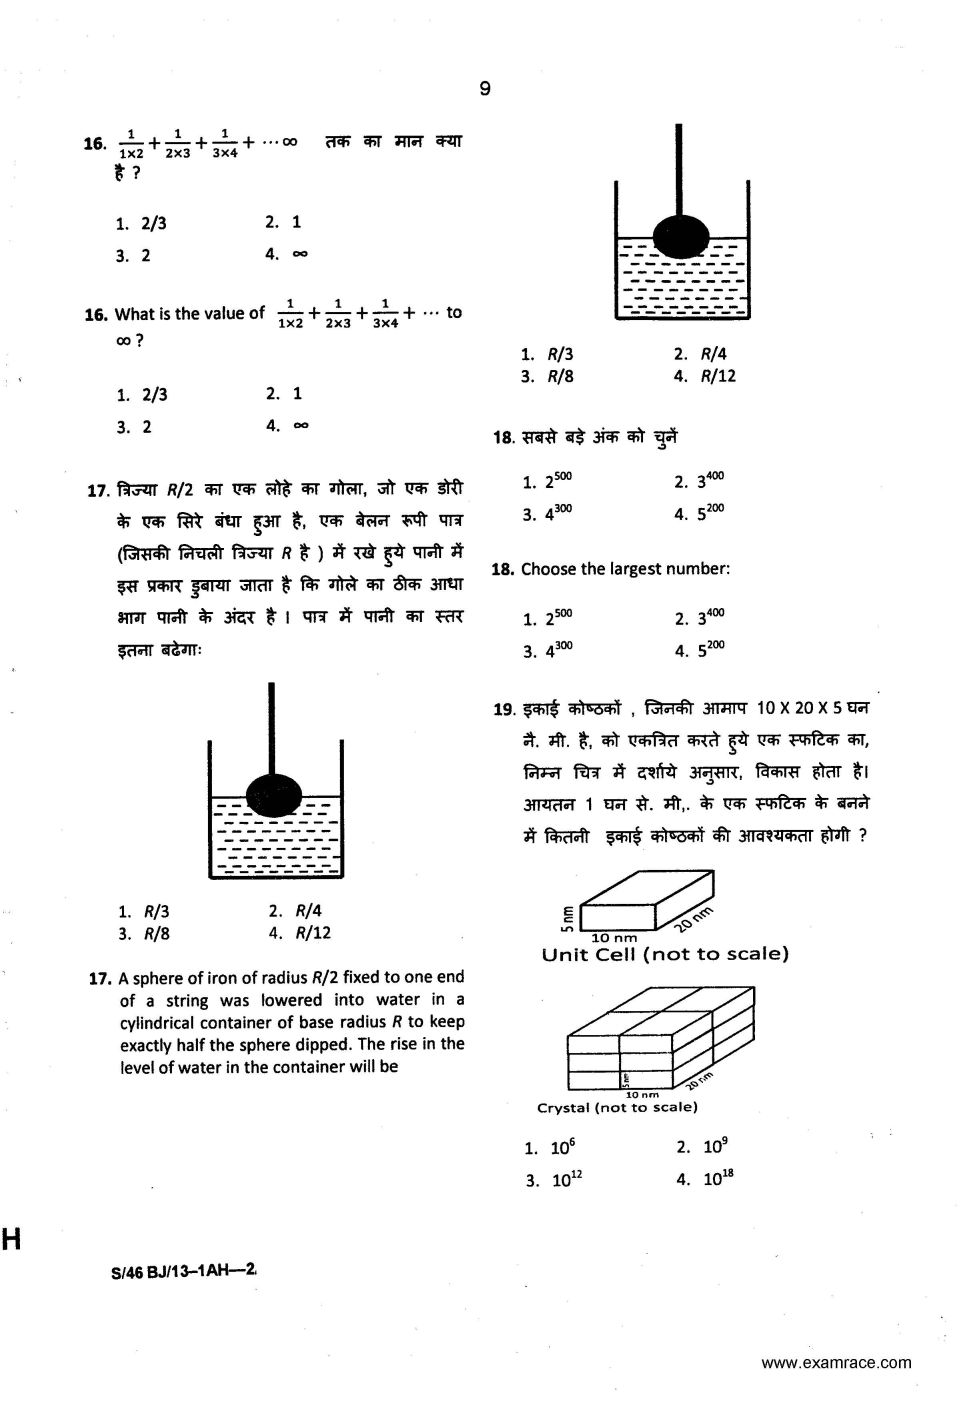 Aipmt previous year question papers pdf in hindi 2018 2019.